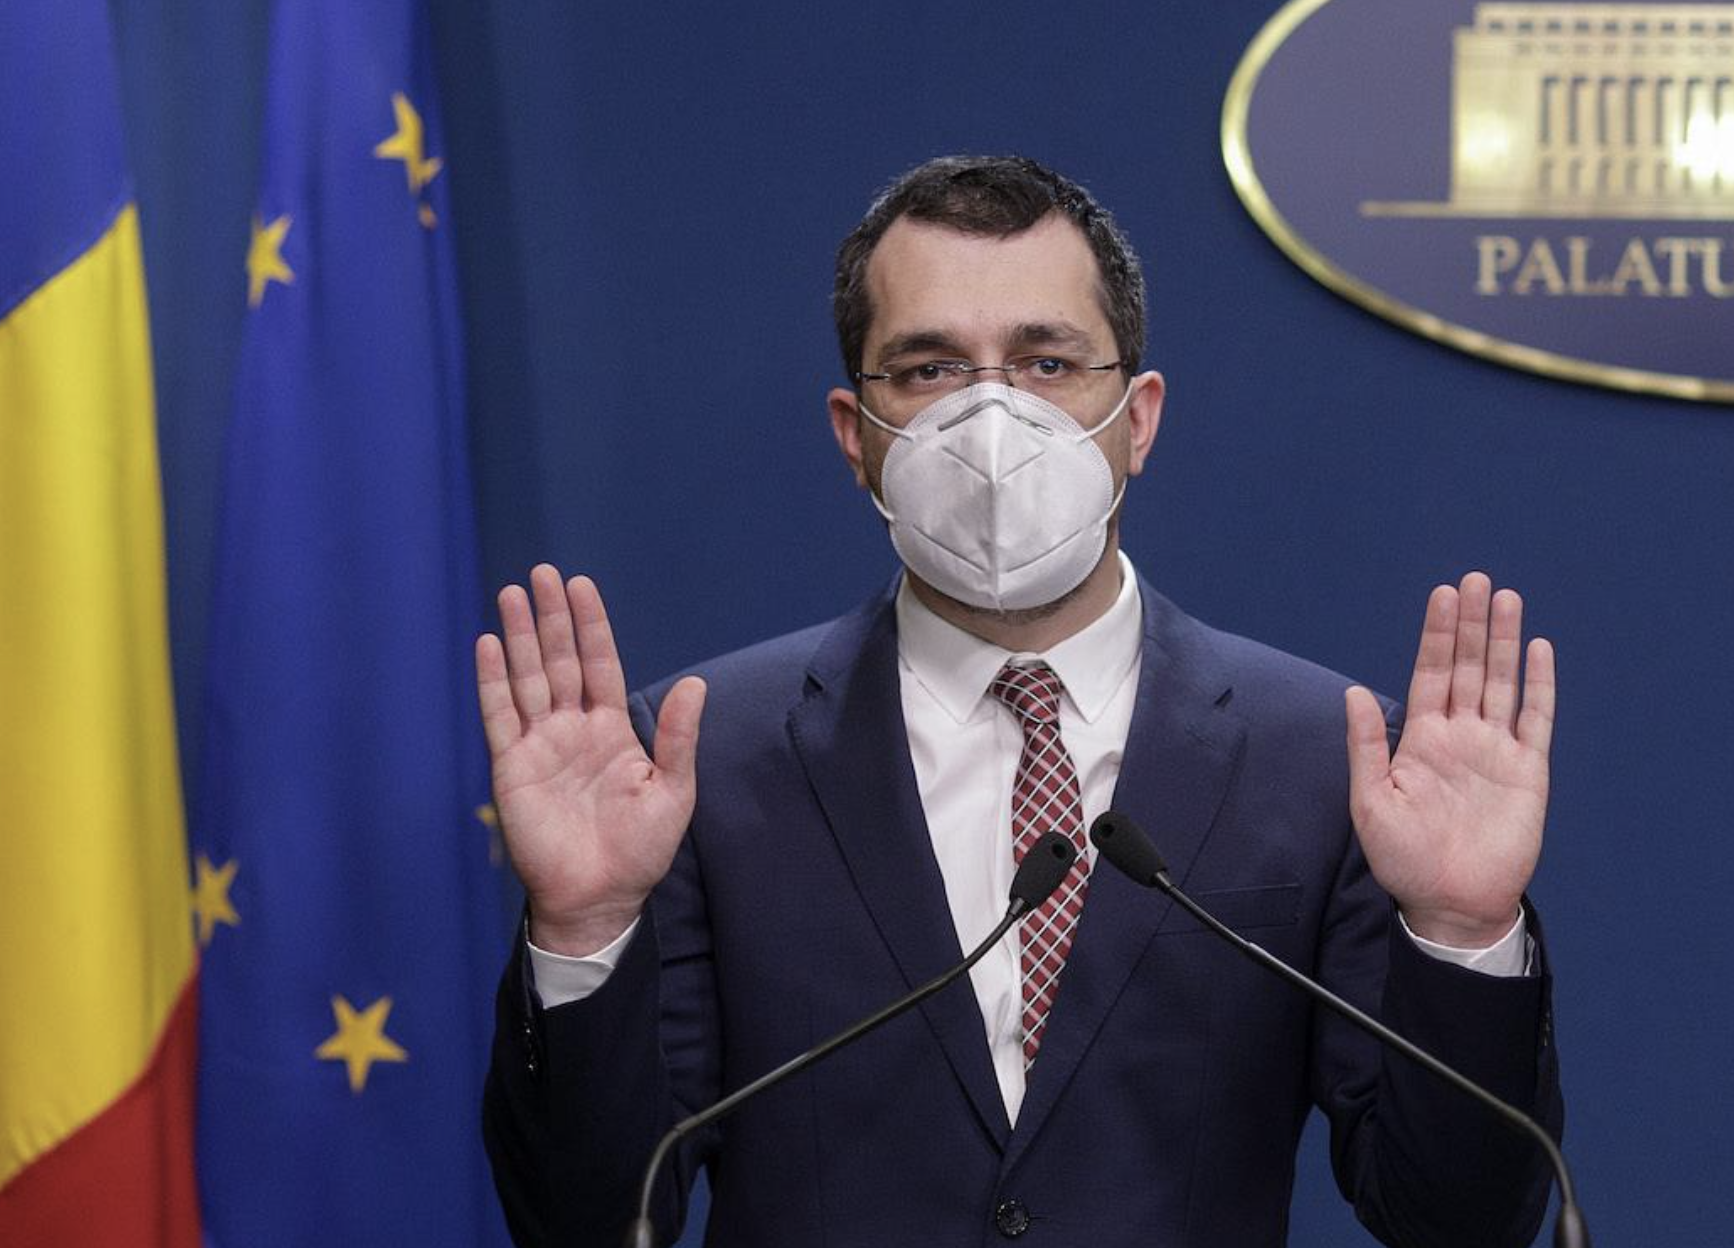 Romania: Citu sacks Health Minister amid efforts to preserve trust in state institutions